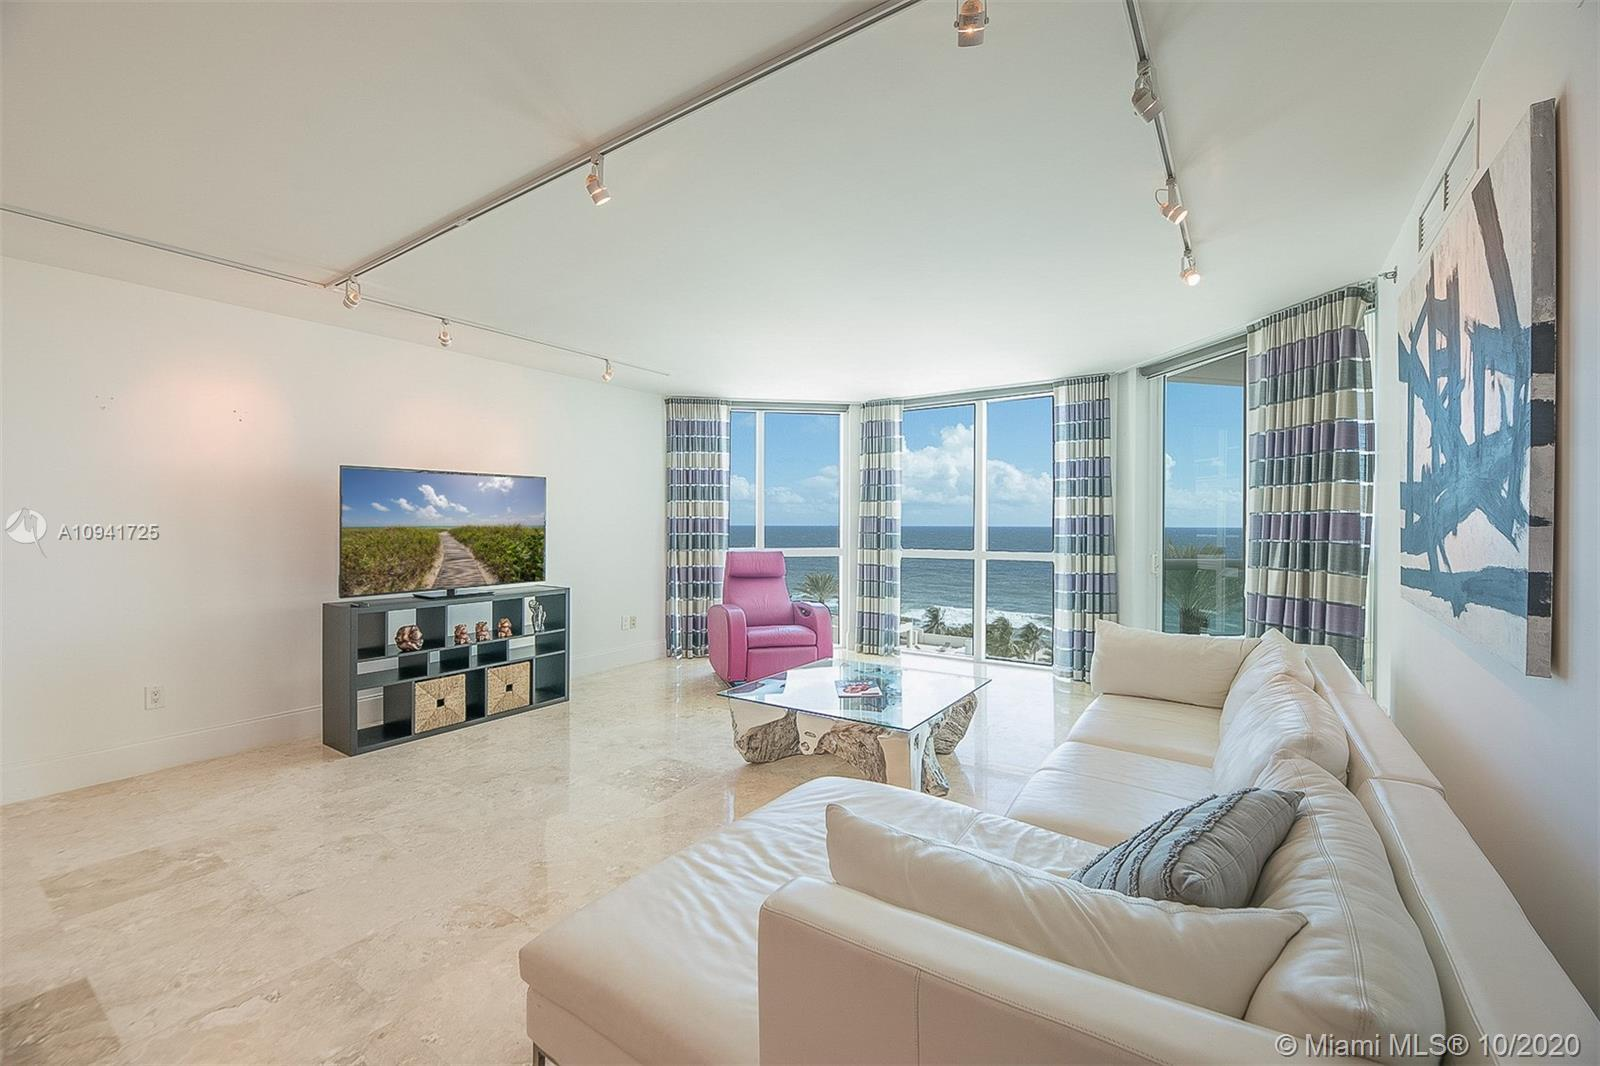 Welcome to Las Olas Beach Club. This is beach living! Best priced unit per SF in the building! Take